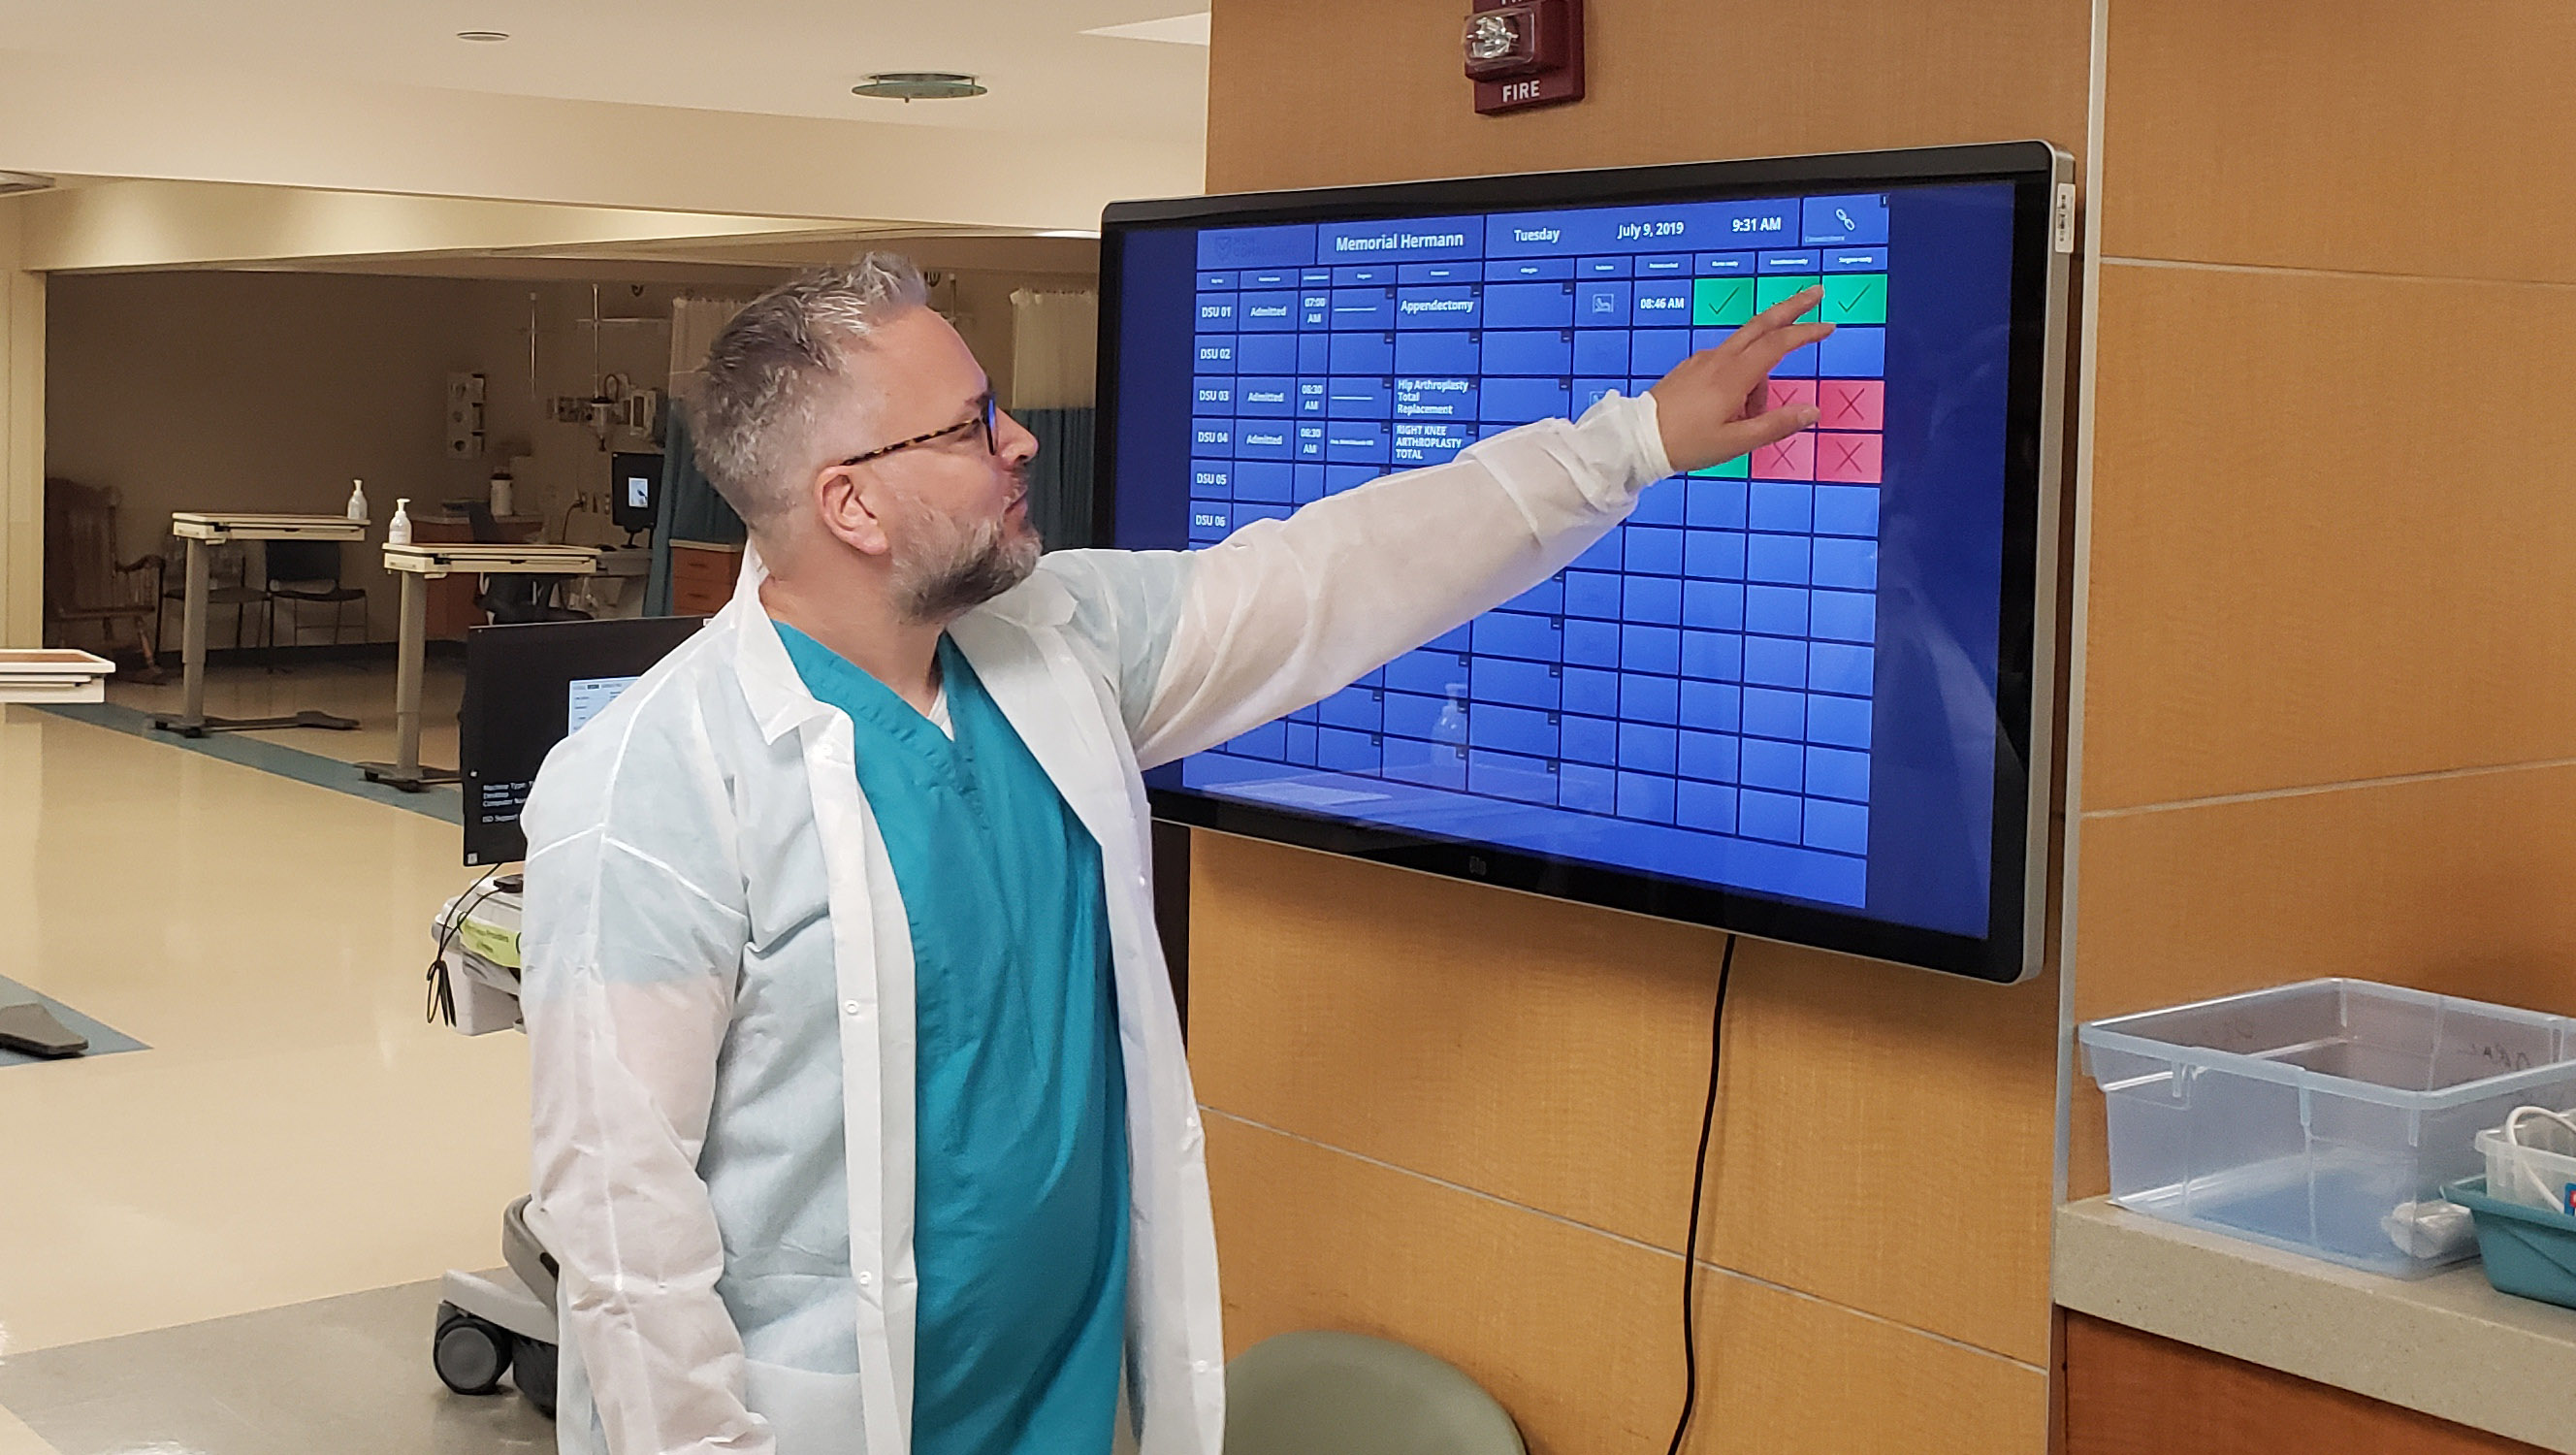 New compliance launches innovative OR monitoring system in Memorial Hermann